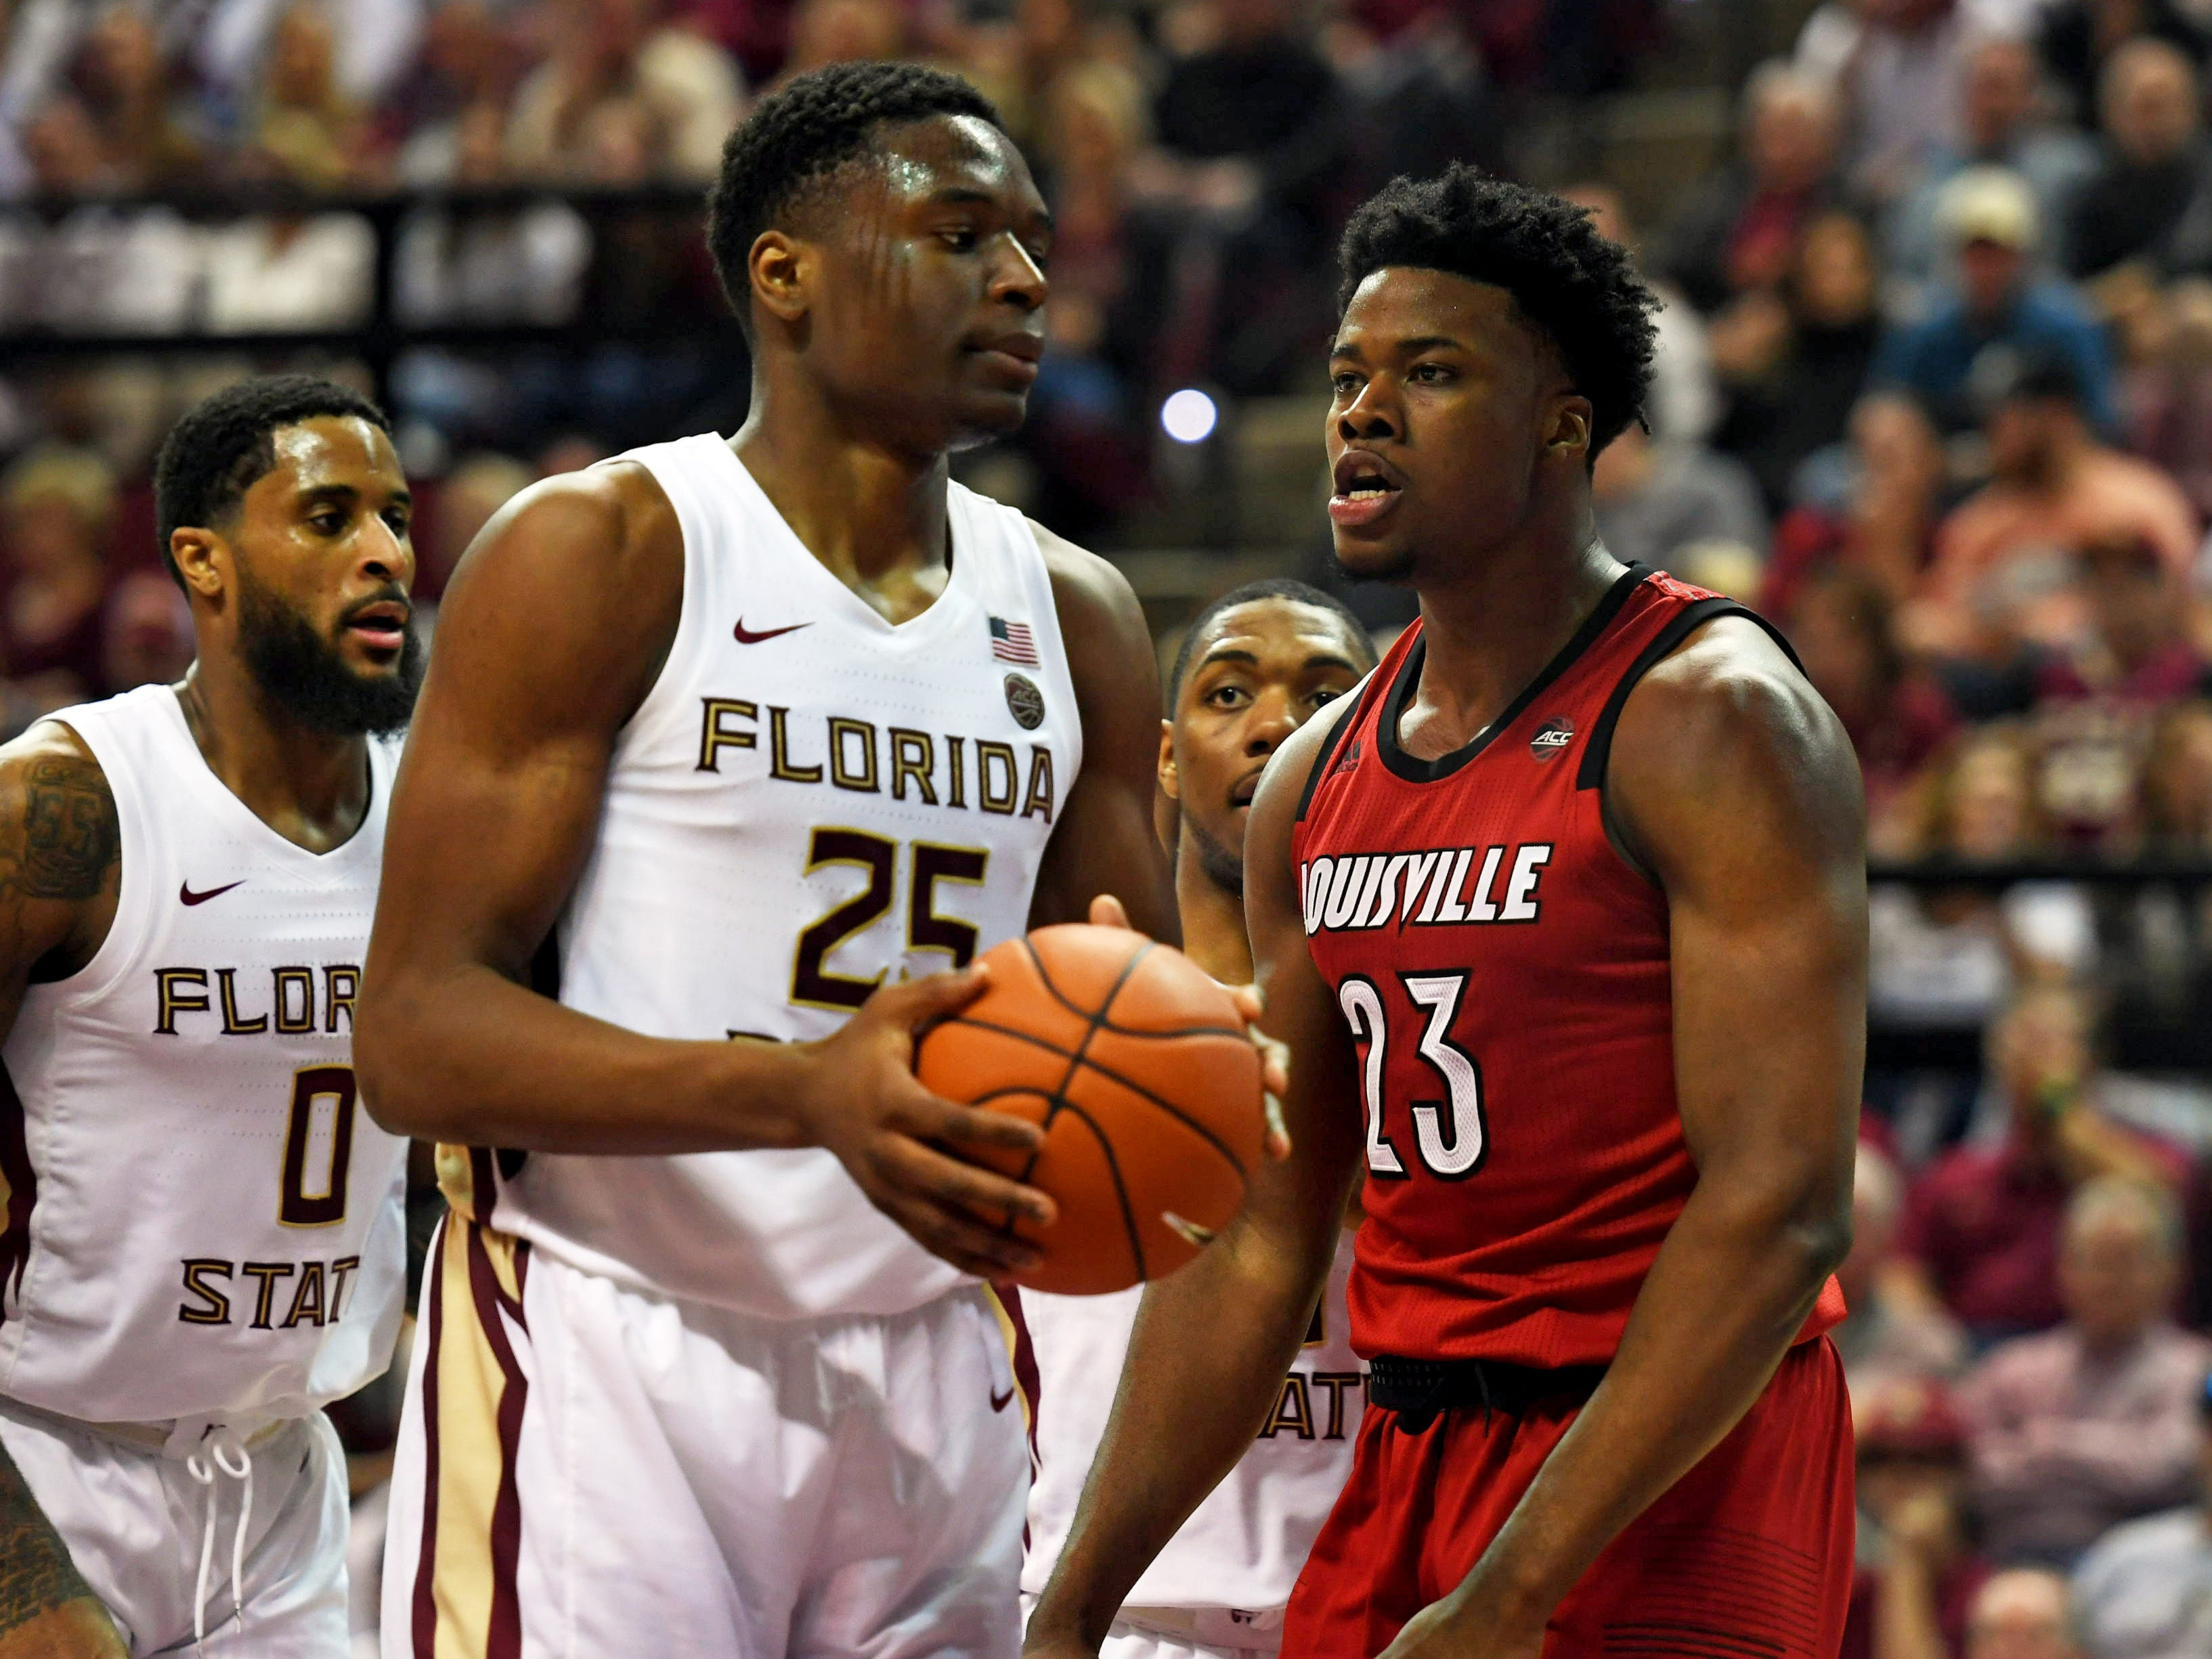 Louisville Cardinals center Steven Enoch (23) receives a technical foul as he gets in the face of Florida State Seminoles forward Mfiondu Kabengele (25) during the second half at Donald L. Tucker Center in Tallahassee, Florida, on Saturday, Feb. 9, 2019.